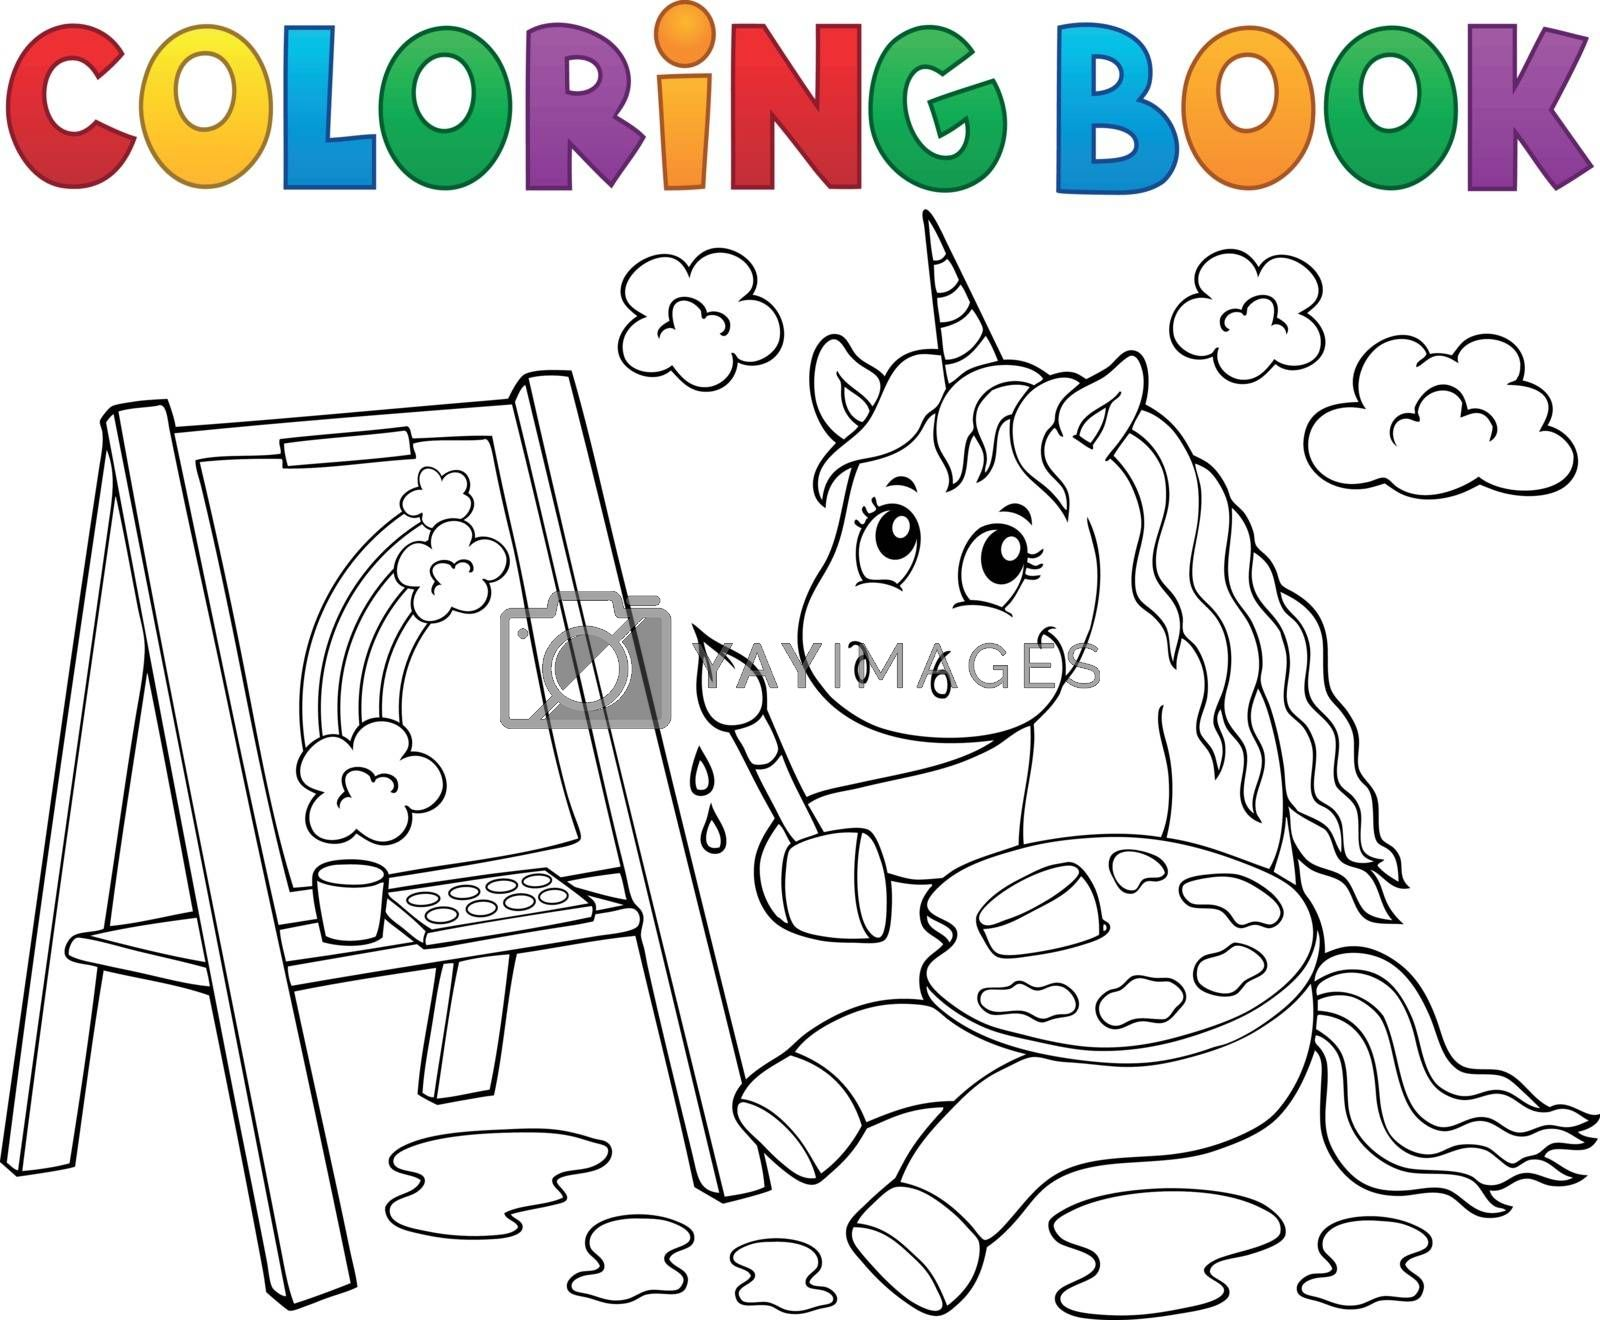 Coloring book painting unicorn theme 2 - eps10 vector illustration.